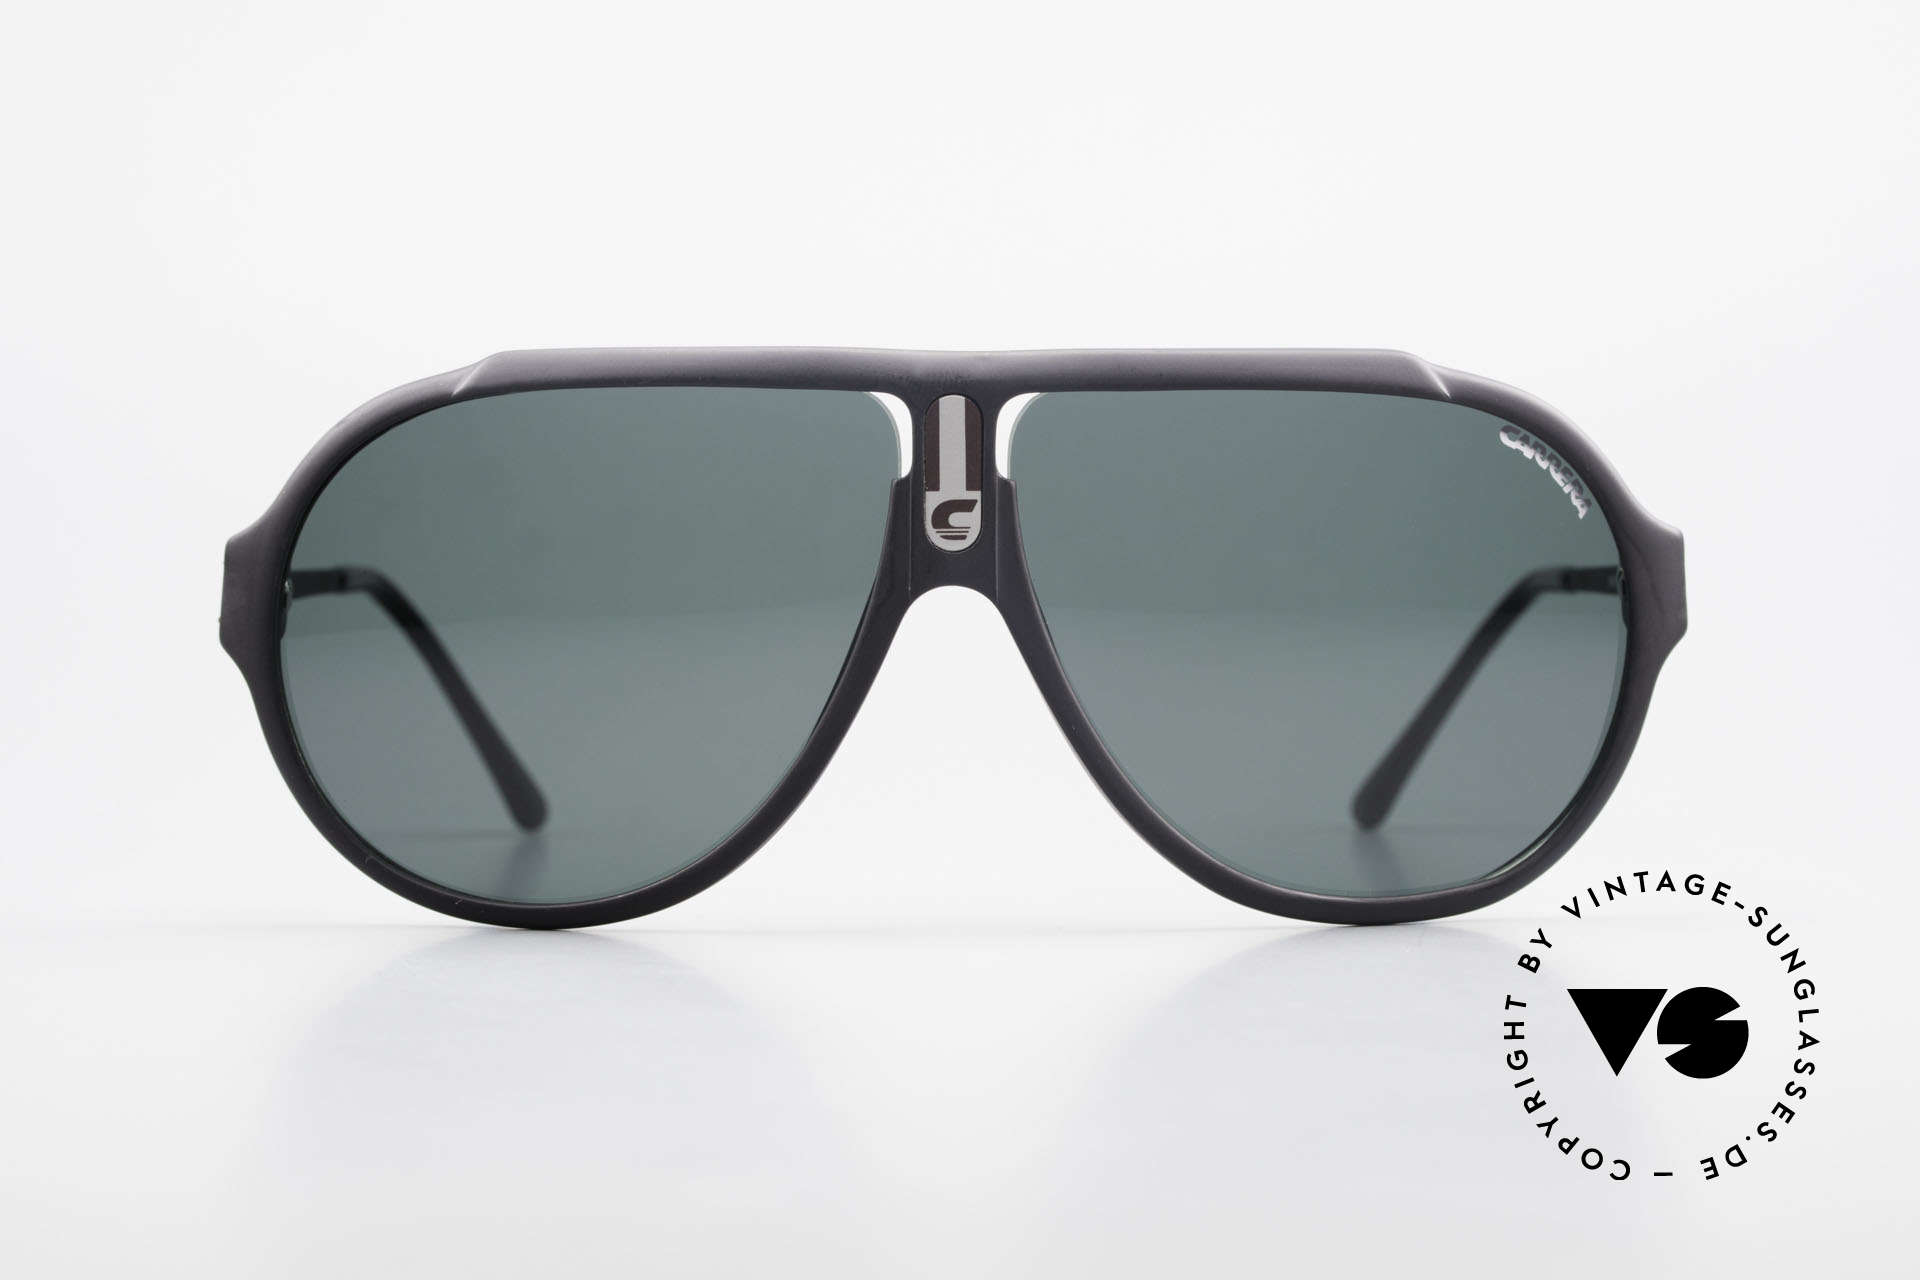 Carrera 5565 Old 1980's Vintage Sunglasses, similar to the famous Carrera 'mod. 5512' (Miami Vice), Made for Men and Women